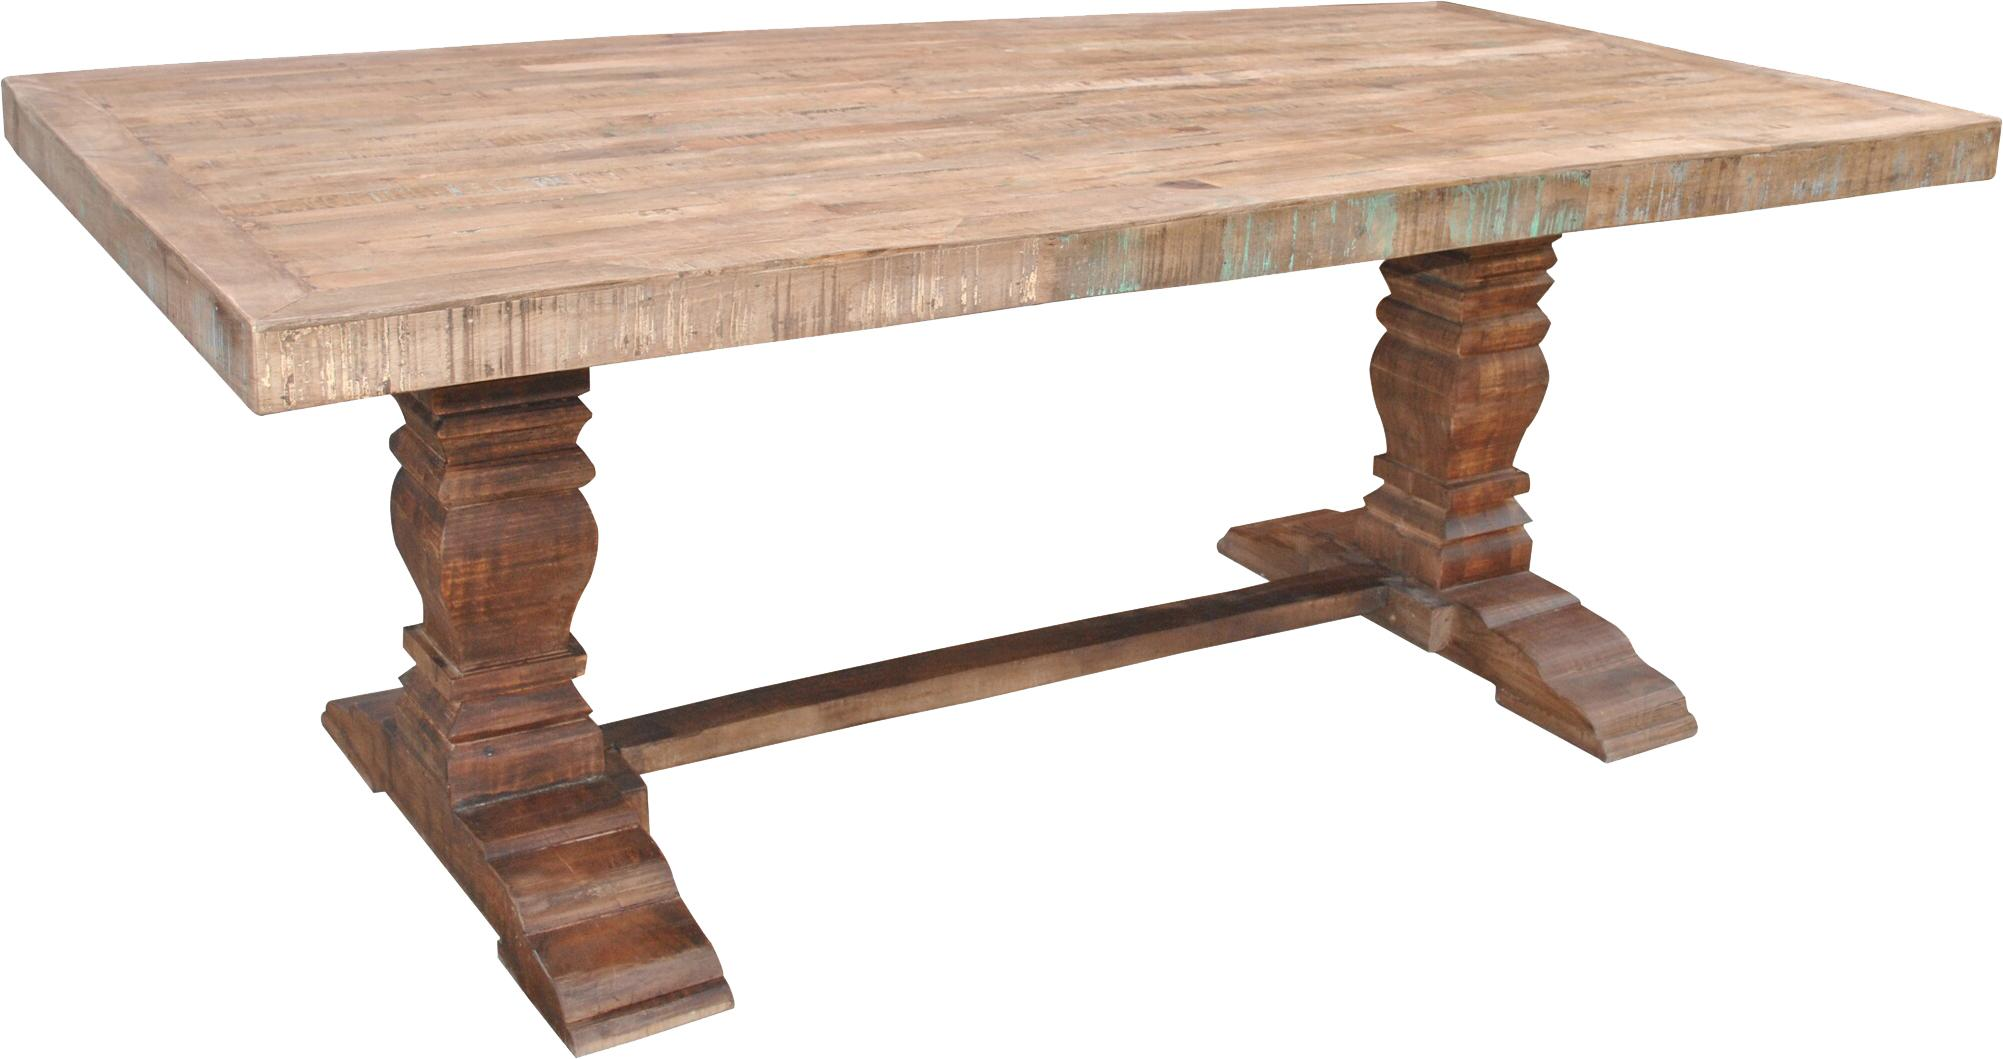 Jaipur Furniture Guru Vintage Pedestal Dining Table FMG Local